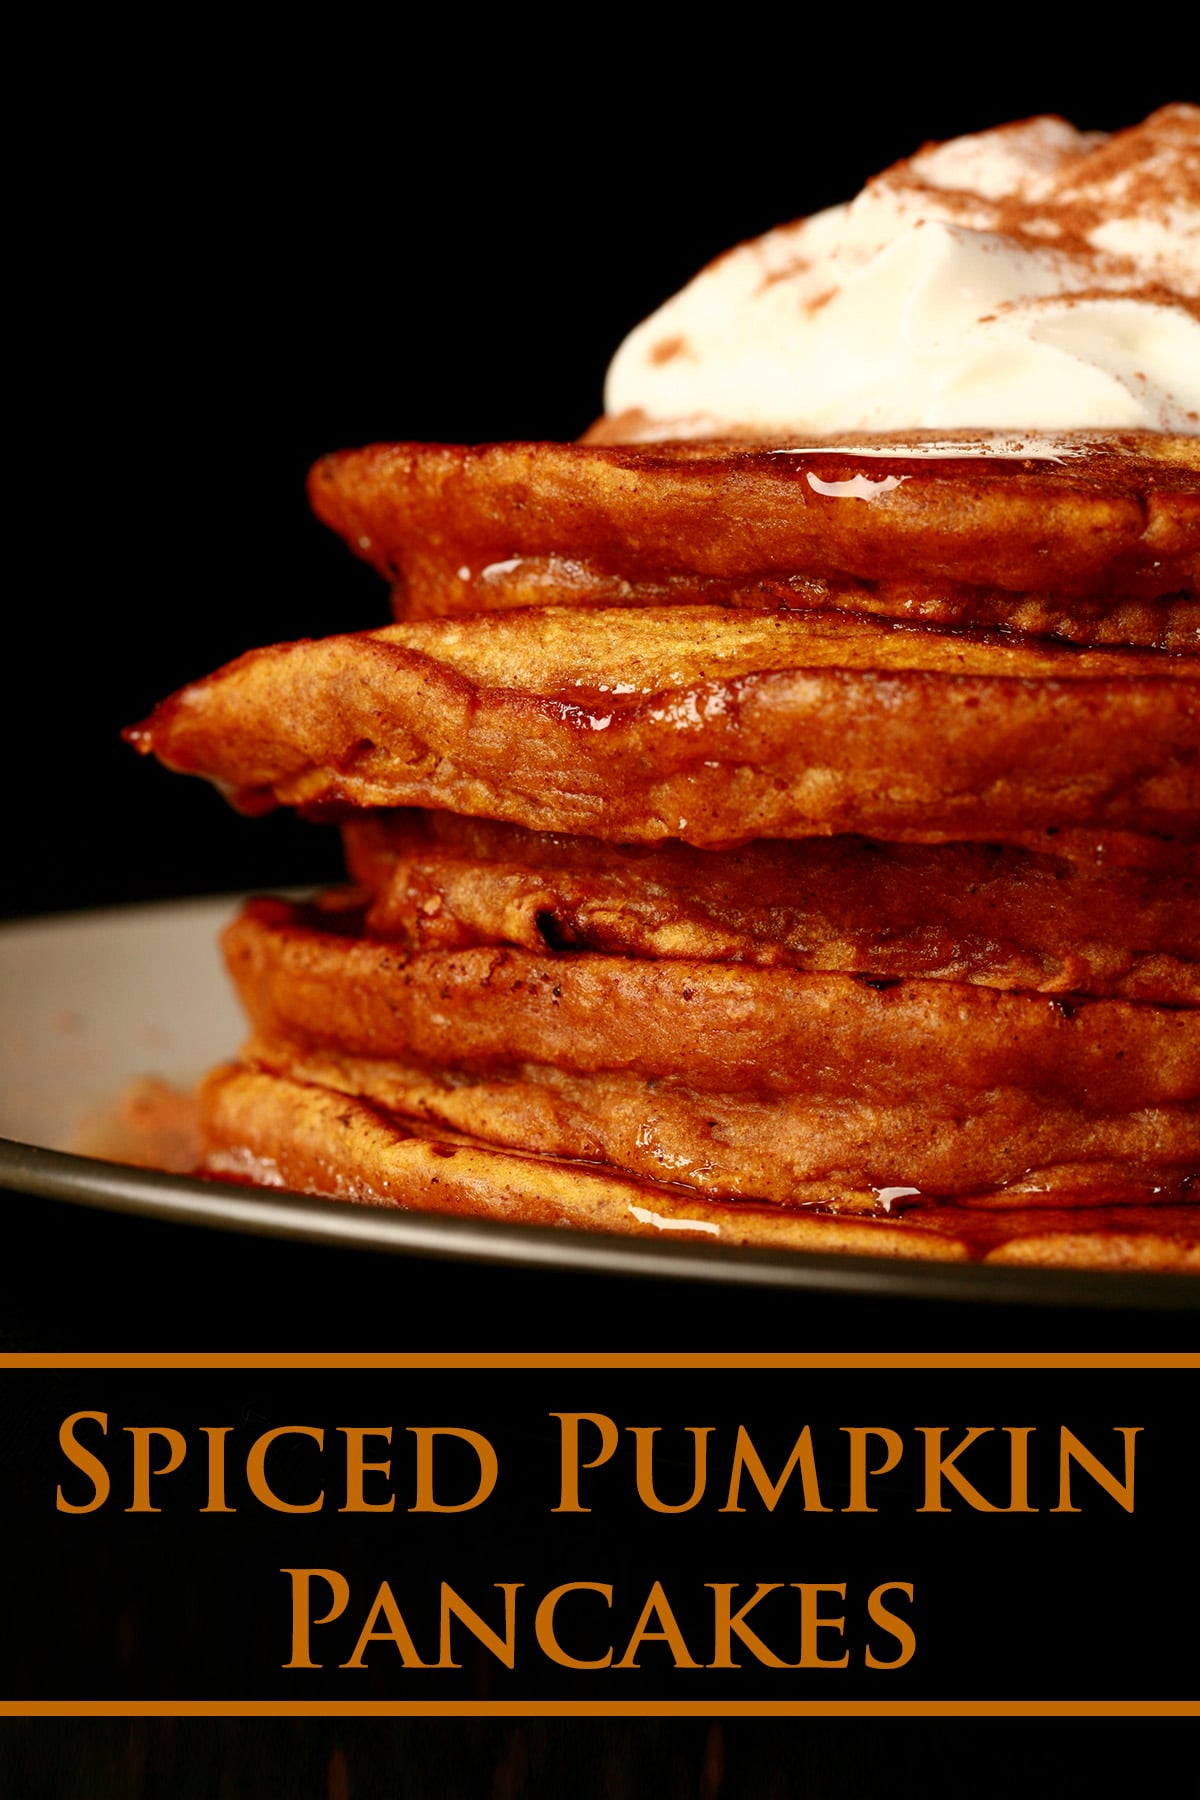 A tall stack of pumpkin spiced pancakes, topped with whipped cream and cinnamon.